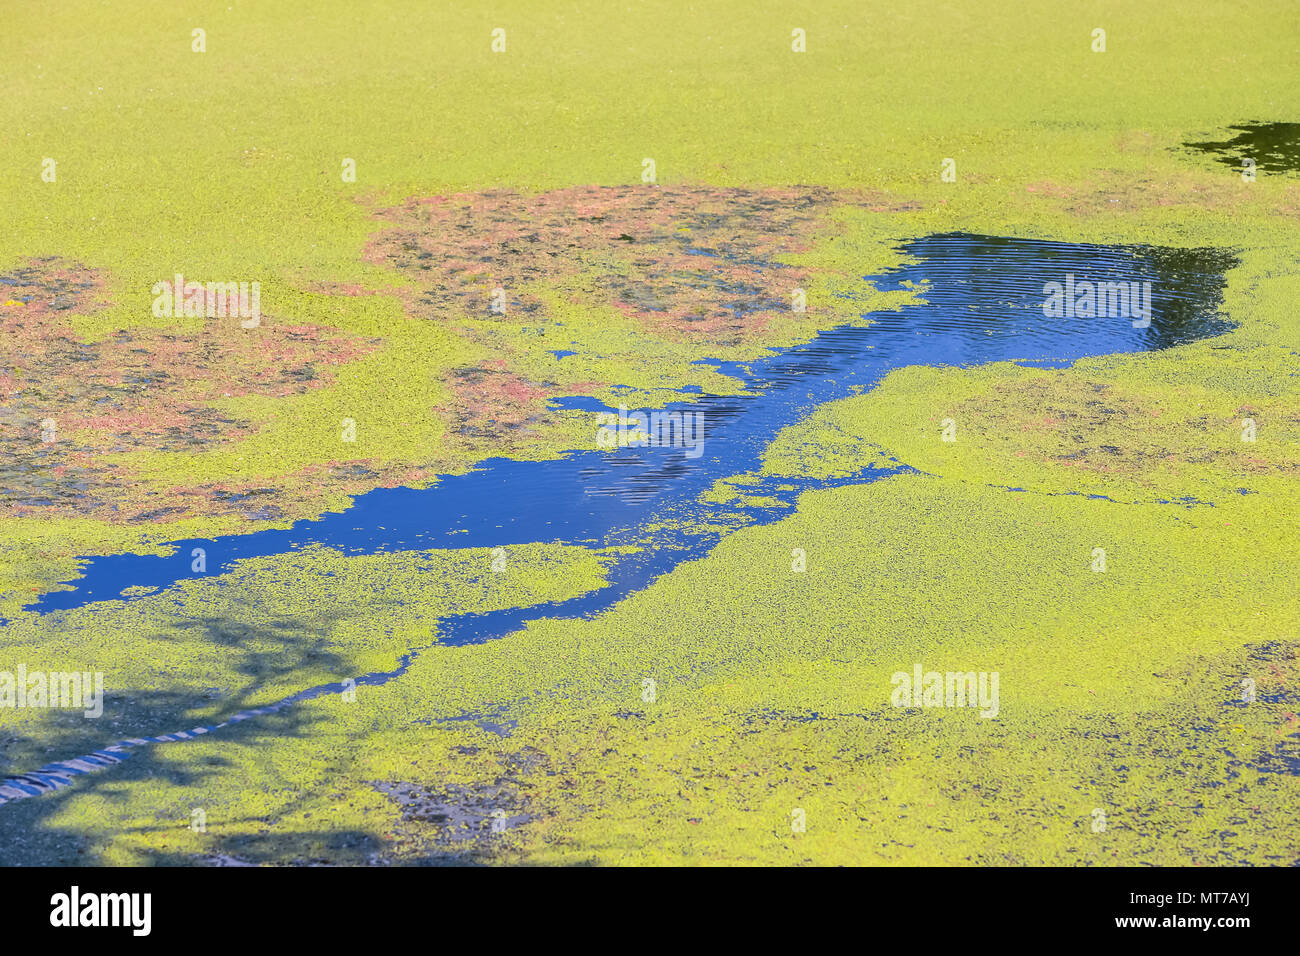 Nature detail of the green river Bosut covered with algal blooms in Vinkovci, Croatia. - Stock Image